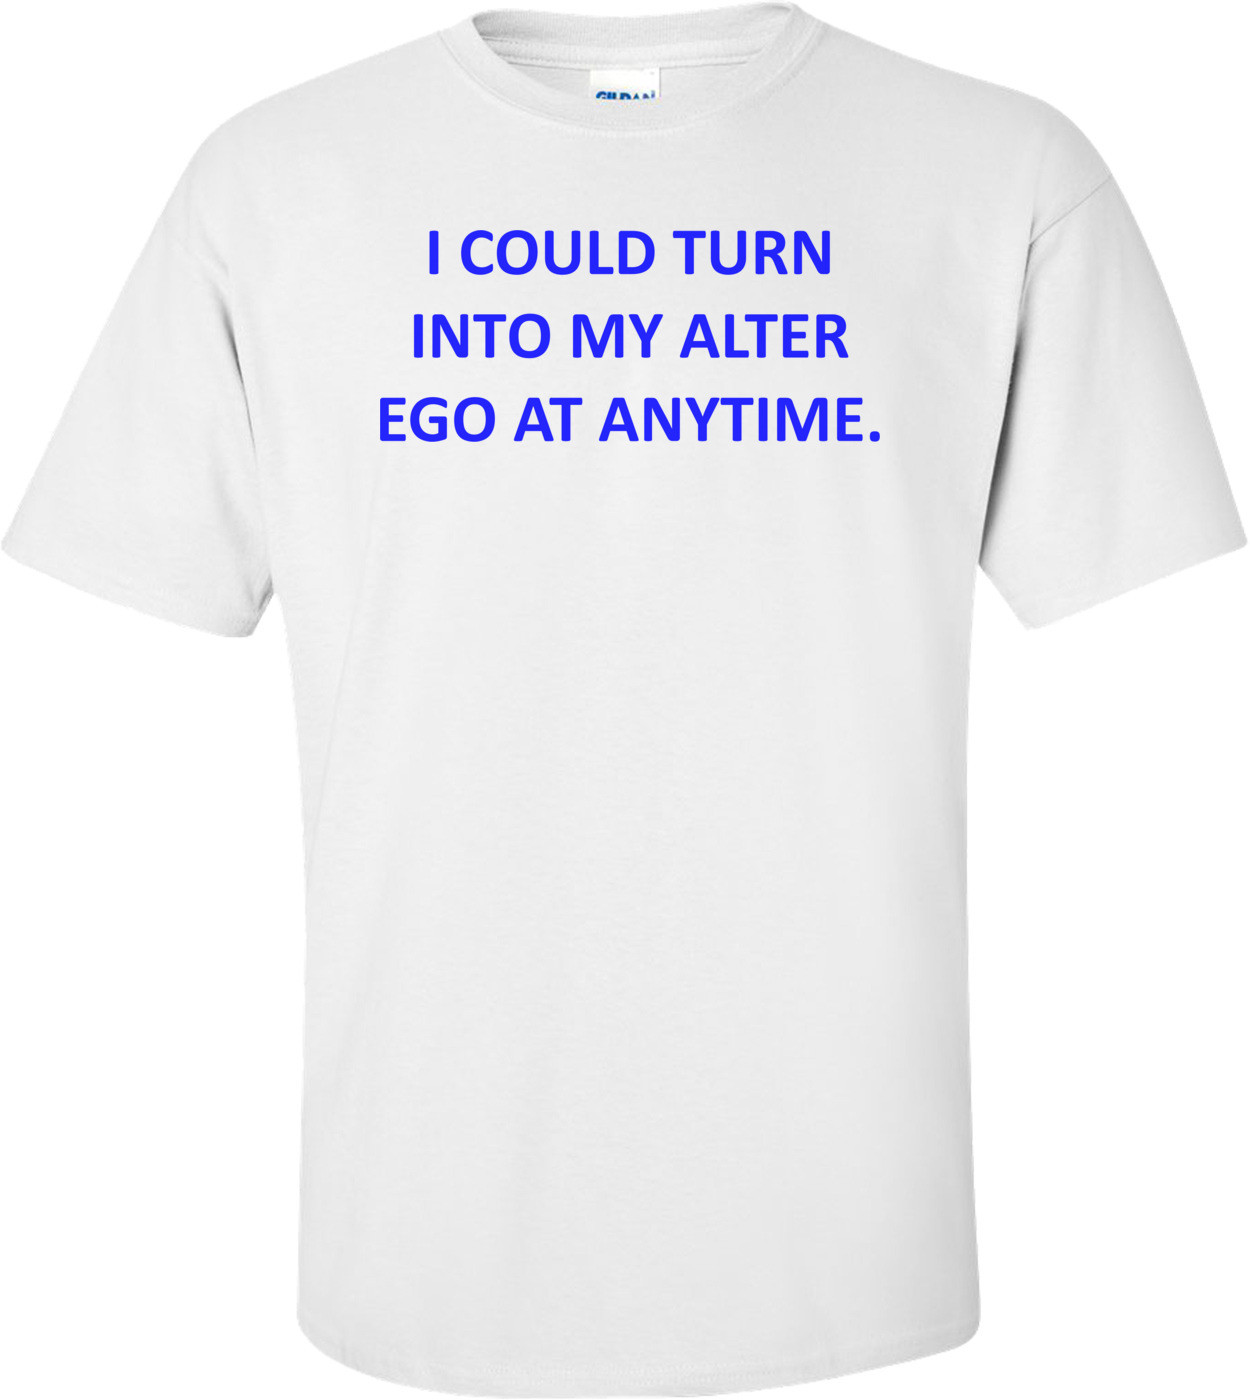 I COULD TURN INTO MY ALTER EGO AT ANYTIME. Shirt